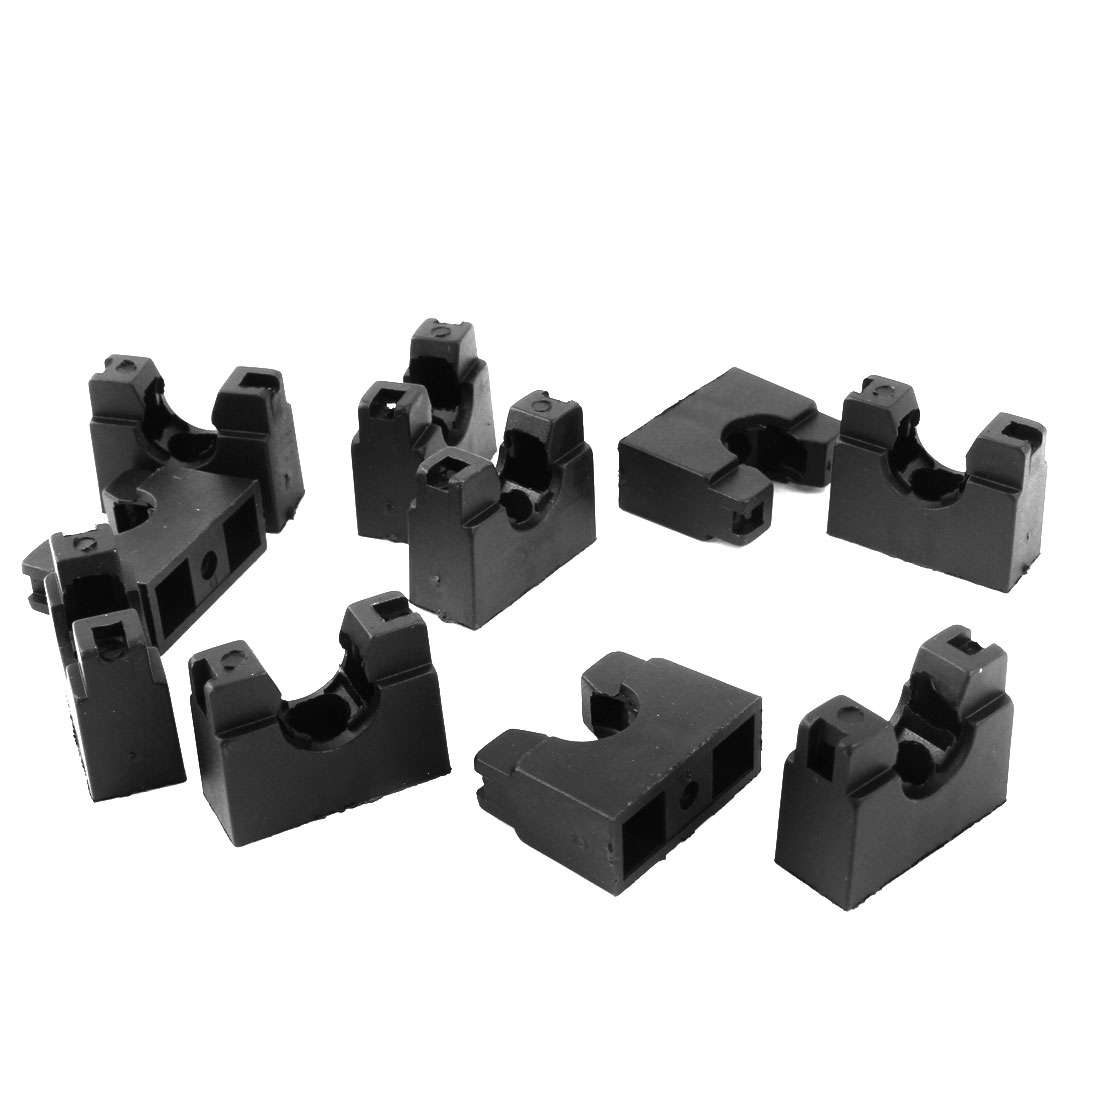 AD13 Flexible Pipe Conduit Plastic Mounting Stand Bracket 10pcs